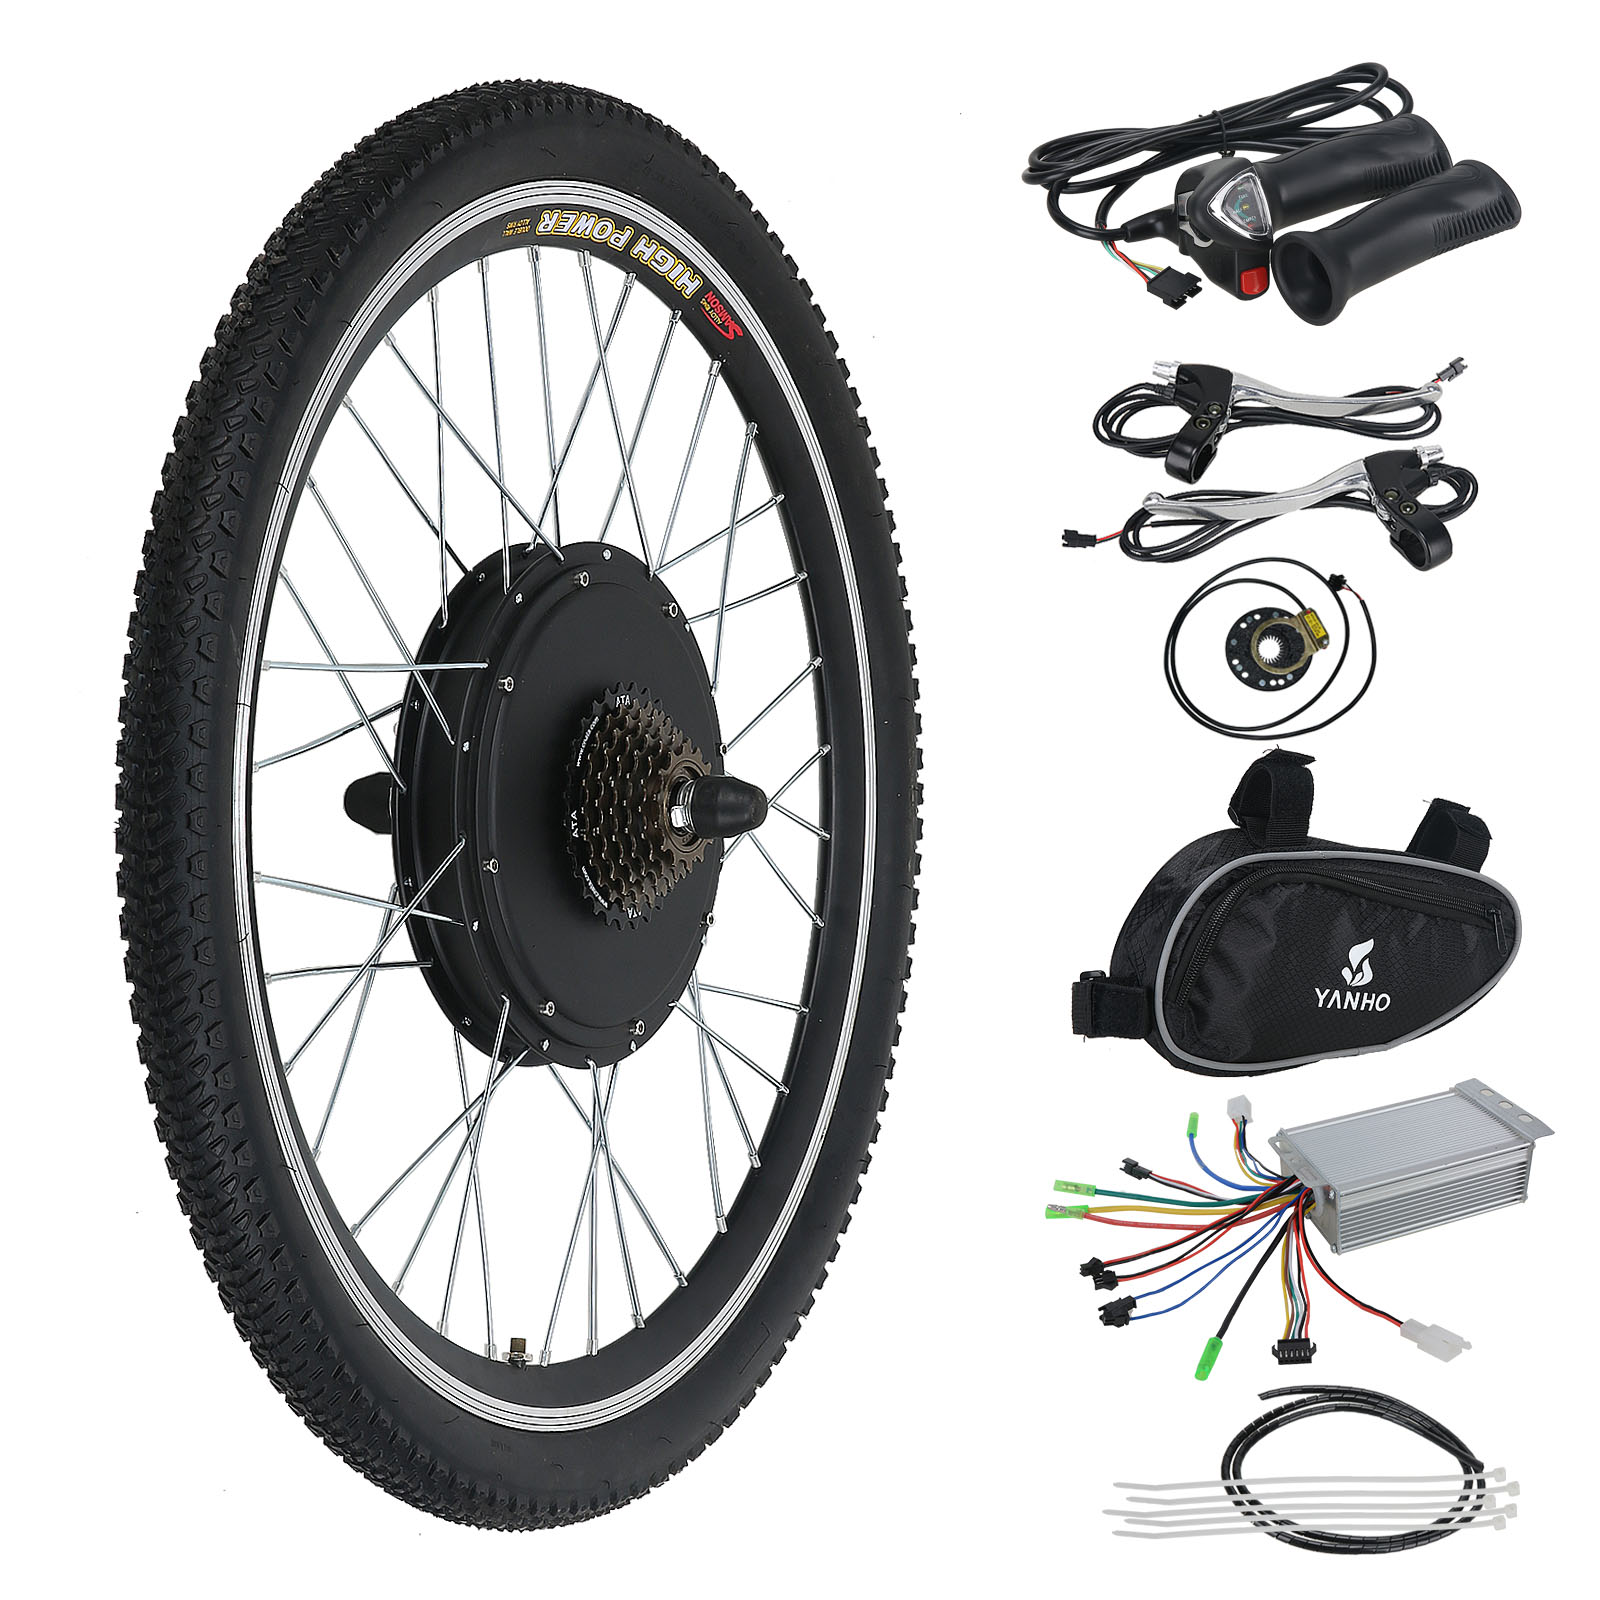 36v 500w electric bicycle e bike motor conversion kit rear wheel cycling hub new ebay. Black Bedroom Furniture Sets. Home Design Ideas